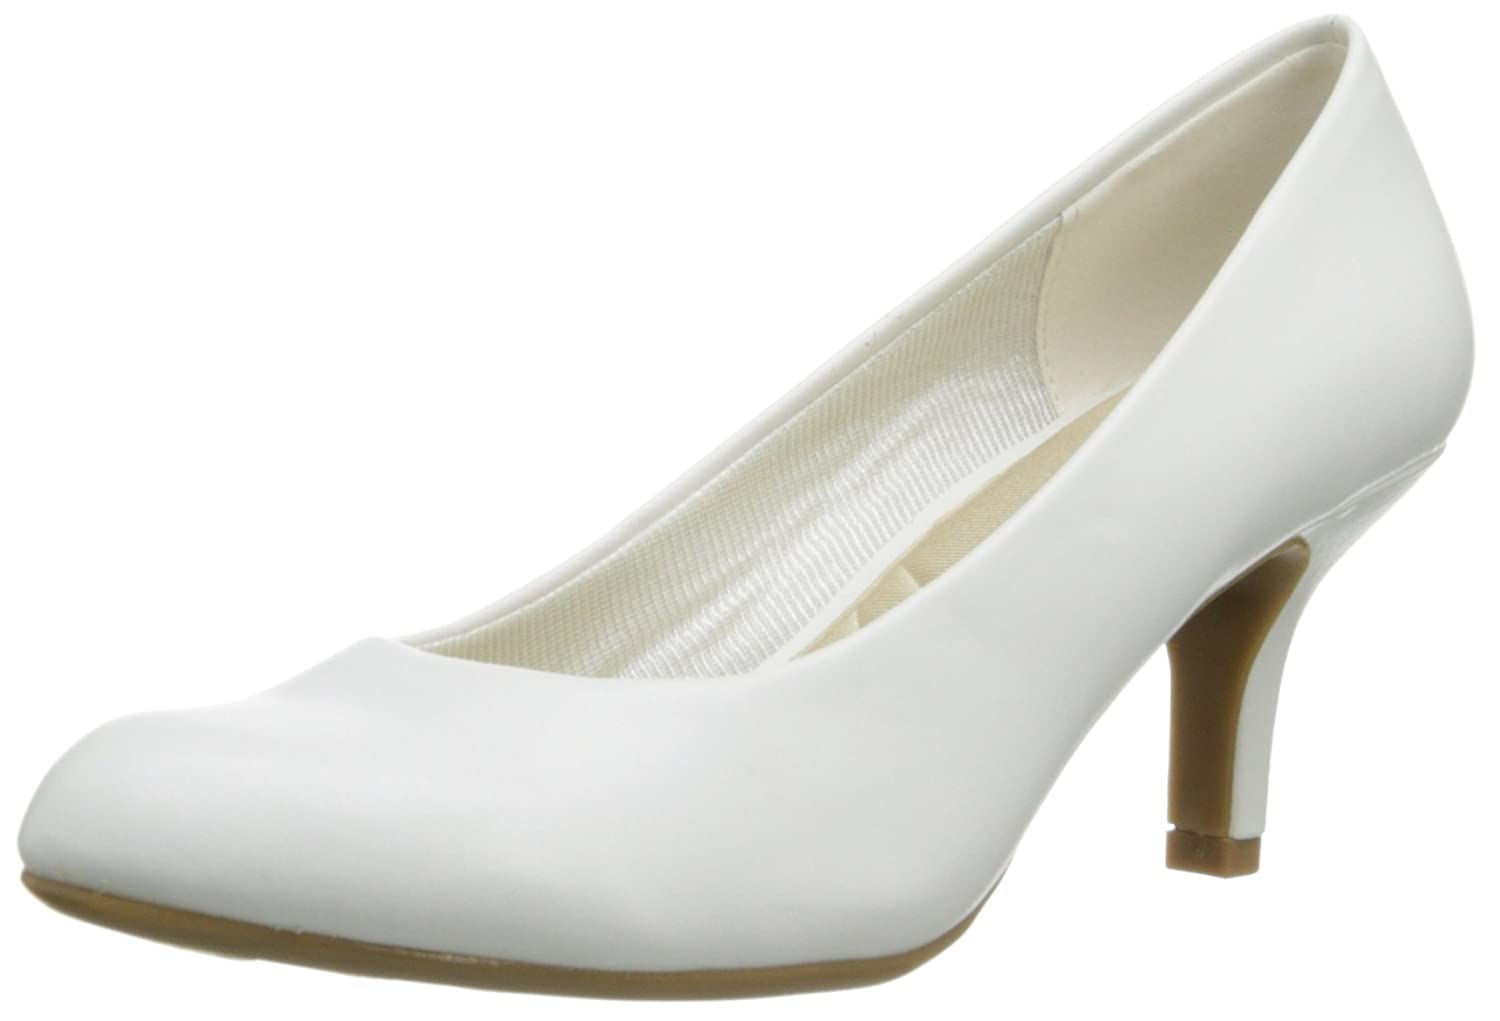 Easy Street Women's Passion Dress Pump B00G0KZ7IY 10 XW US|White